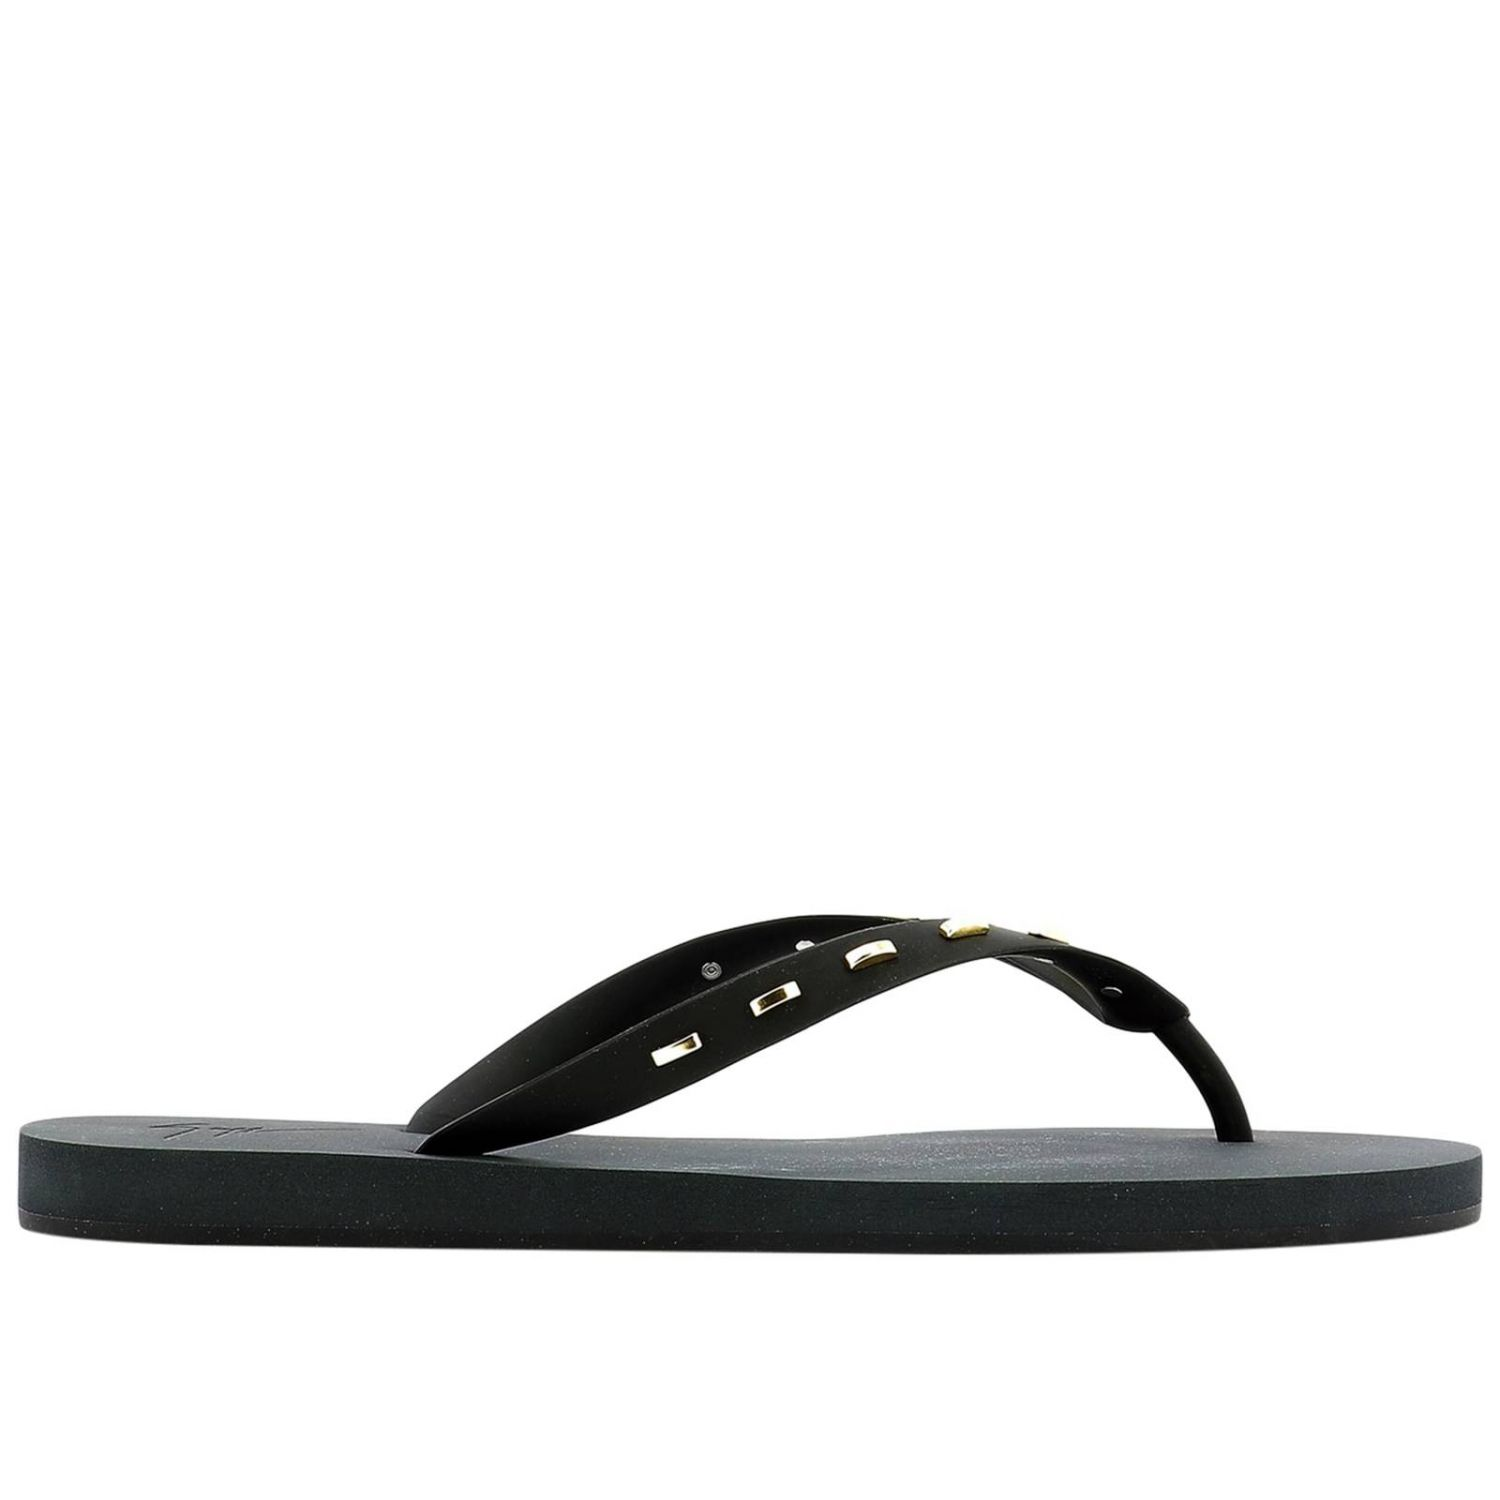 Sandals men Giuseppe Zanotti Design black 1